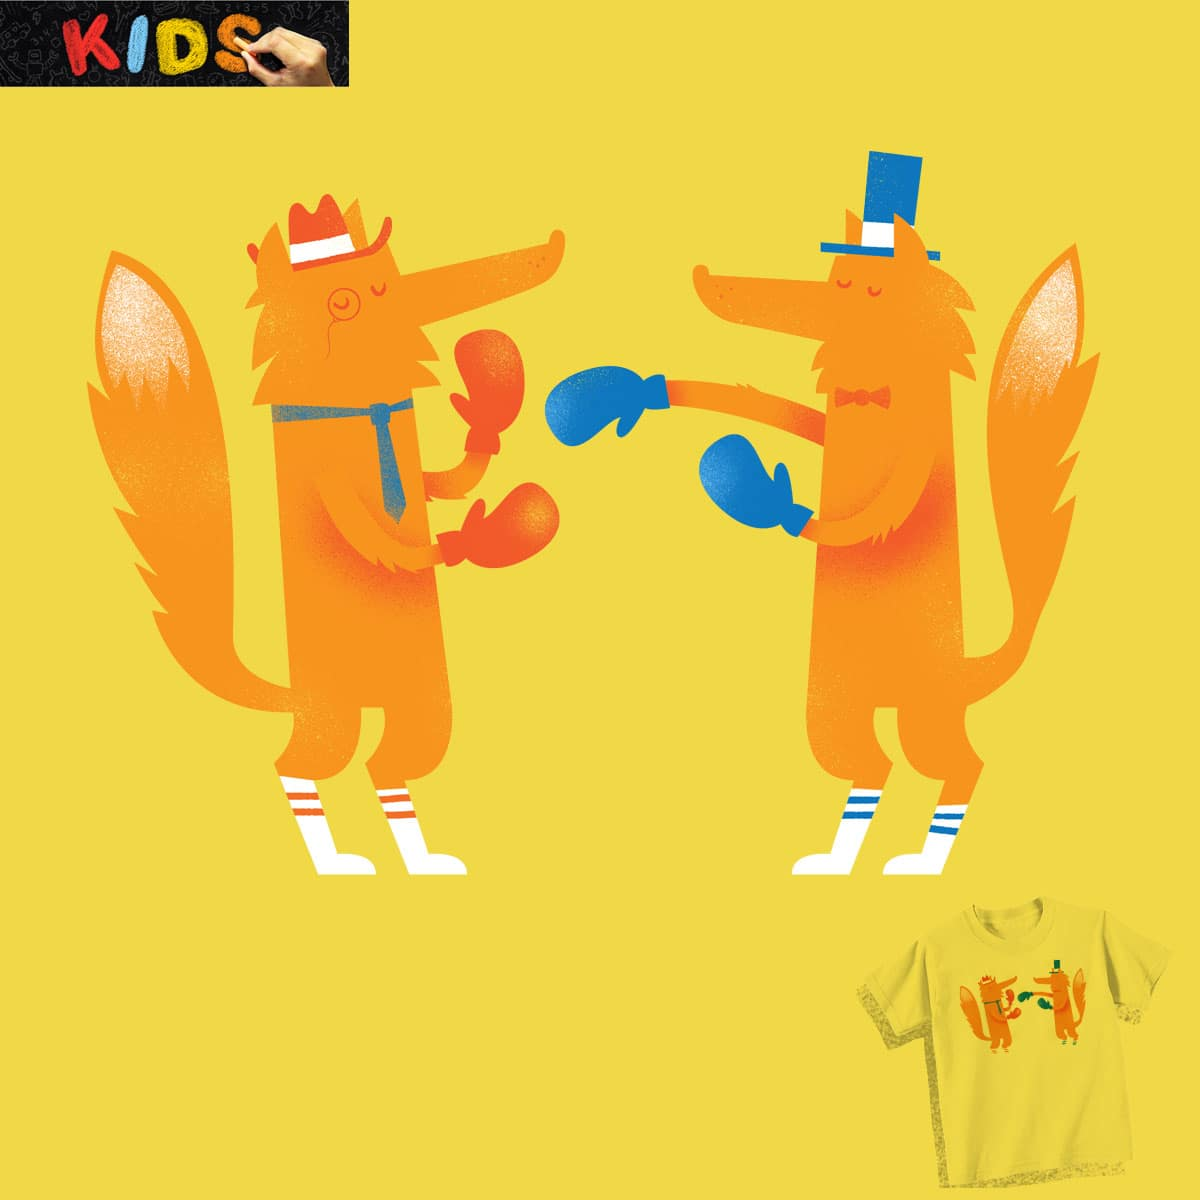 Posh foxes like to box while wearing socks by Wharton on Threadless